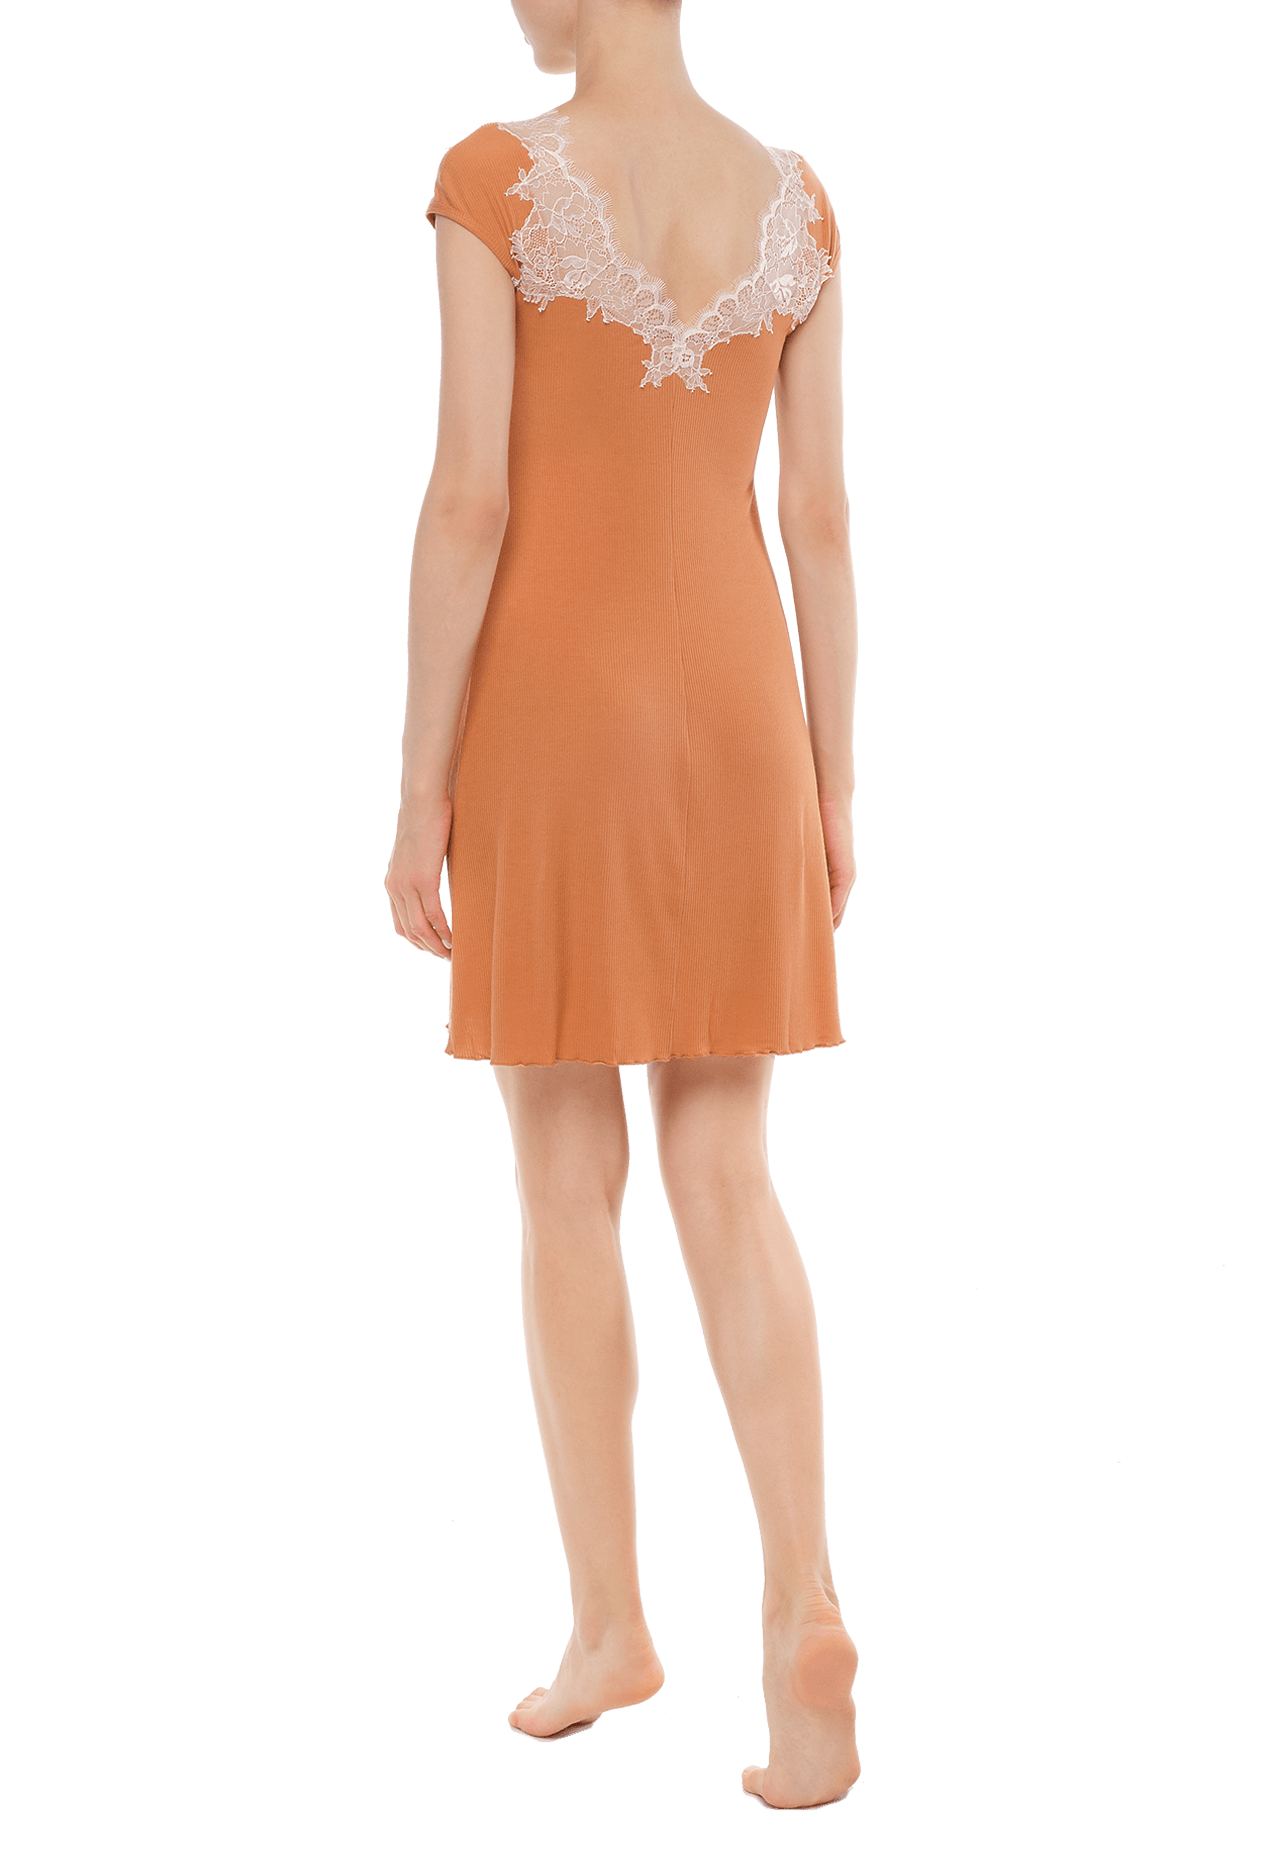 Ночная сорочка Suavite lace-night-dress-slp60-19-og-wendy-w